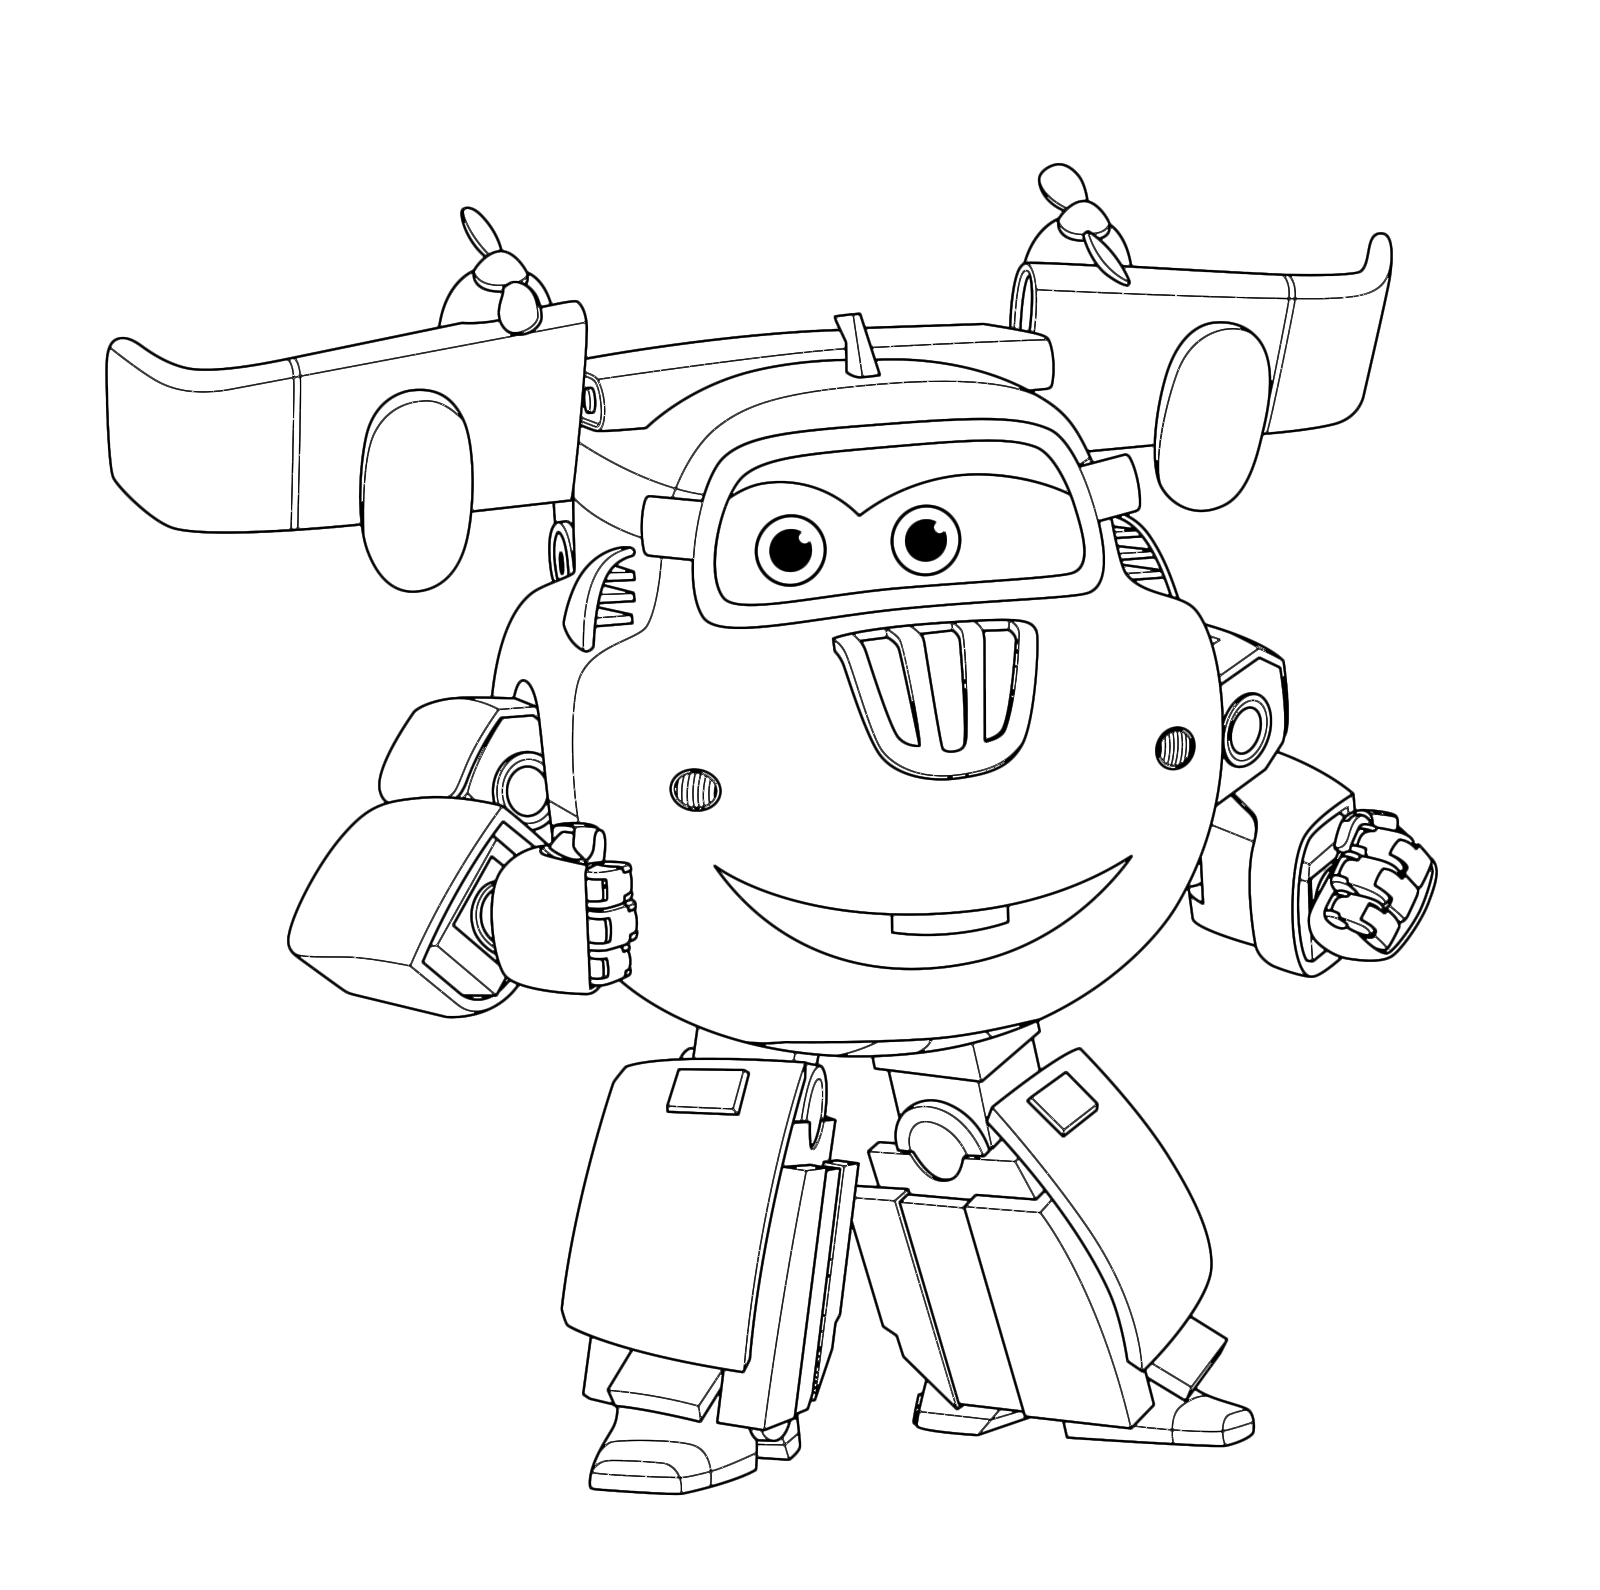 Dorable Sprout Super Wings Coloring Pages Images - Coloring Page ...